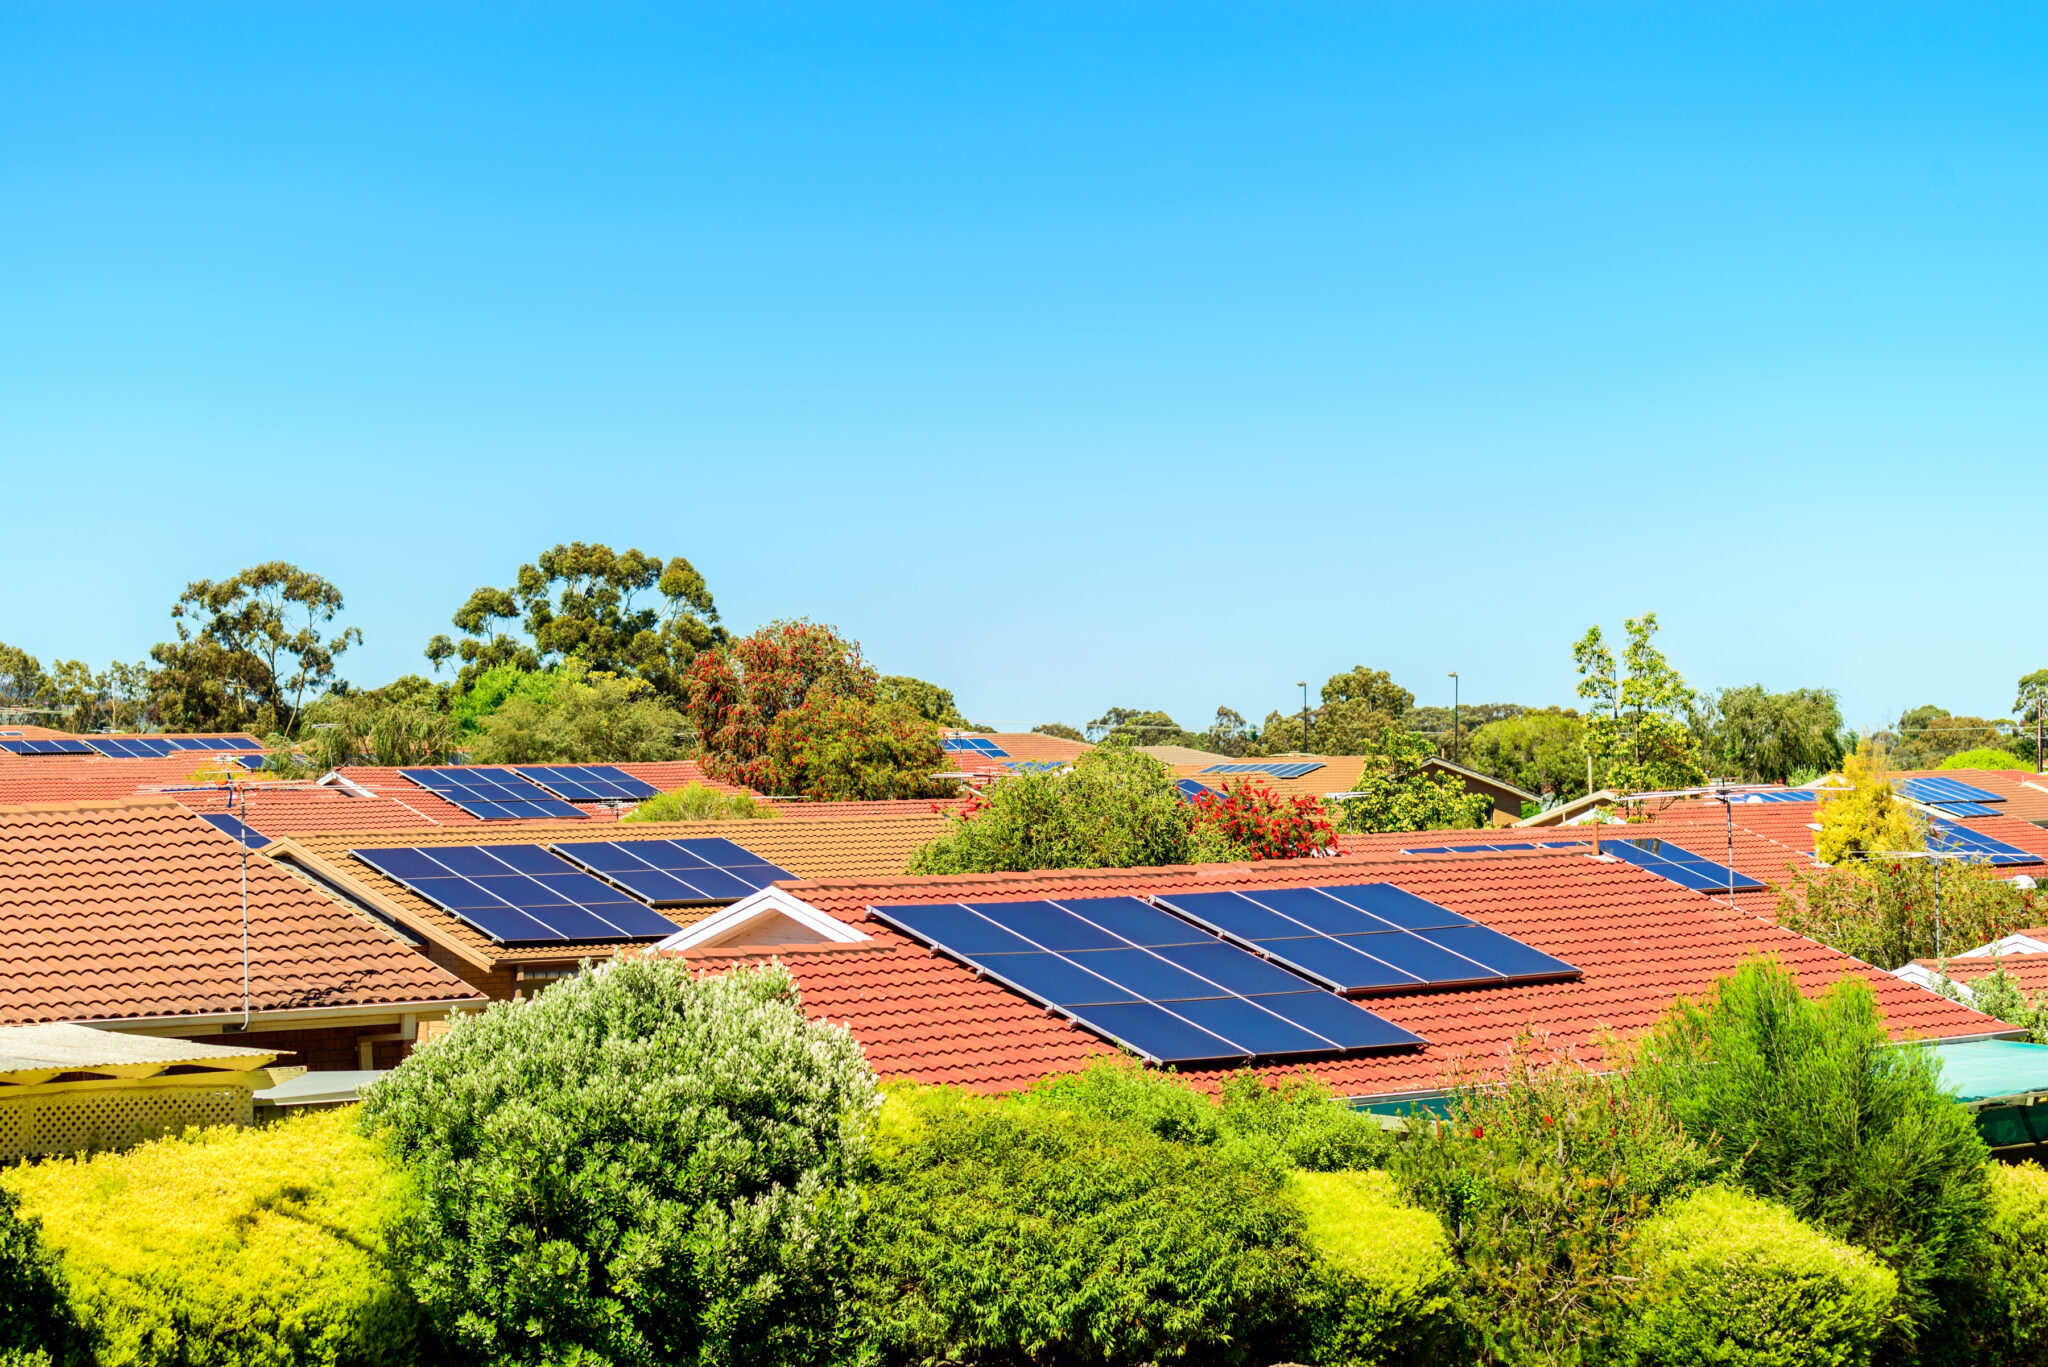 Going Solar: The Benefits and Challenges of Solar Panels